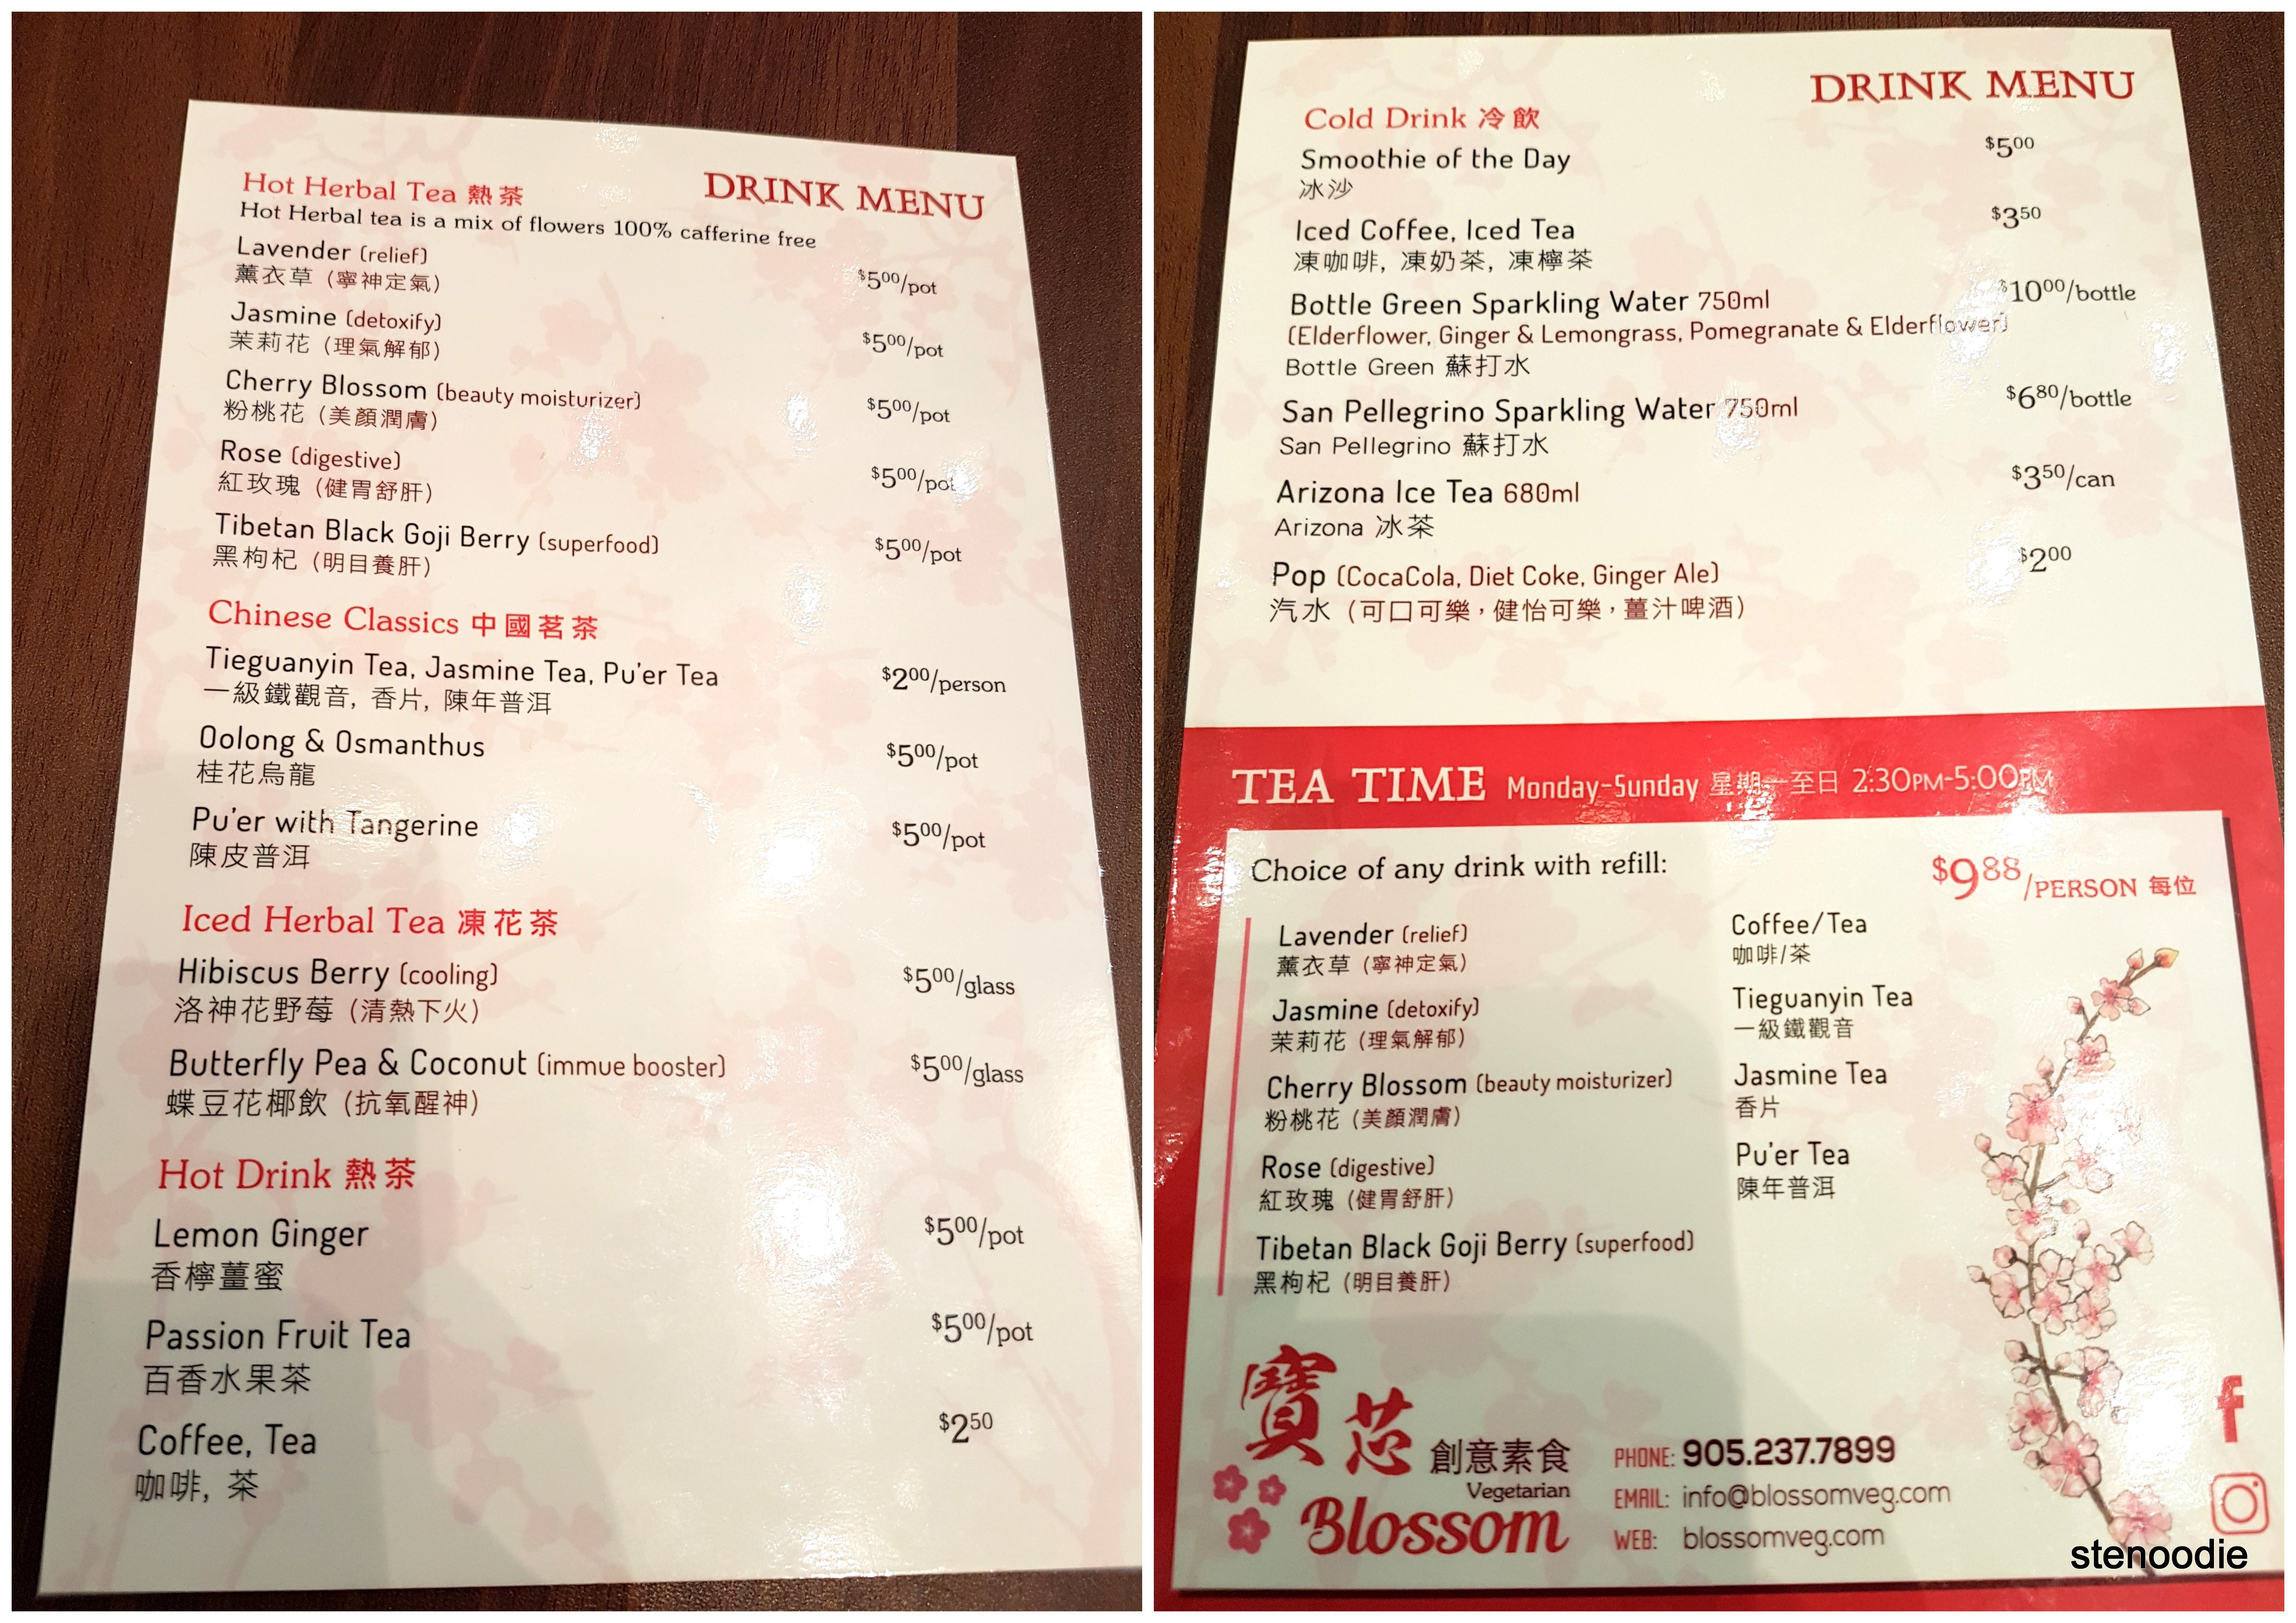 Blossom Vegetarian drinks menu and prices